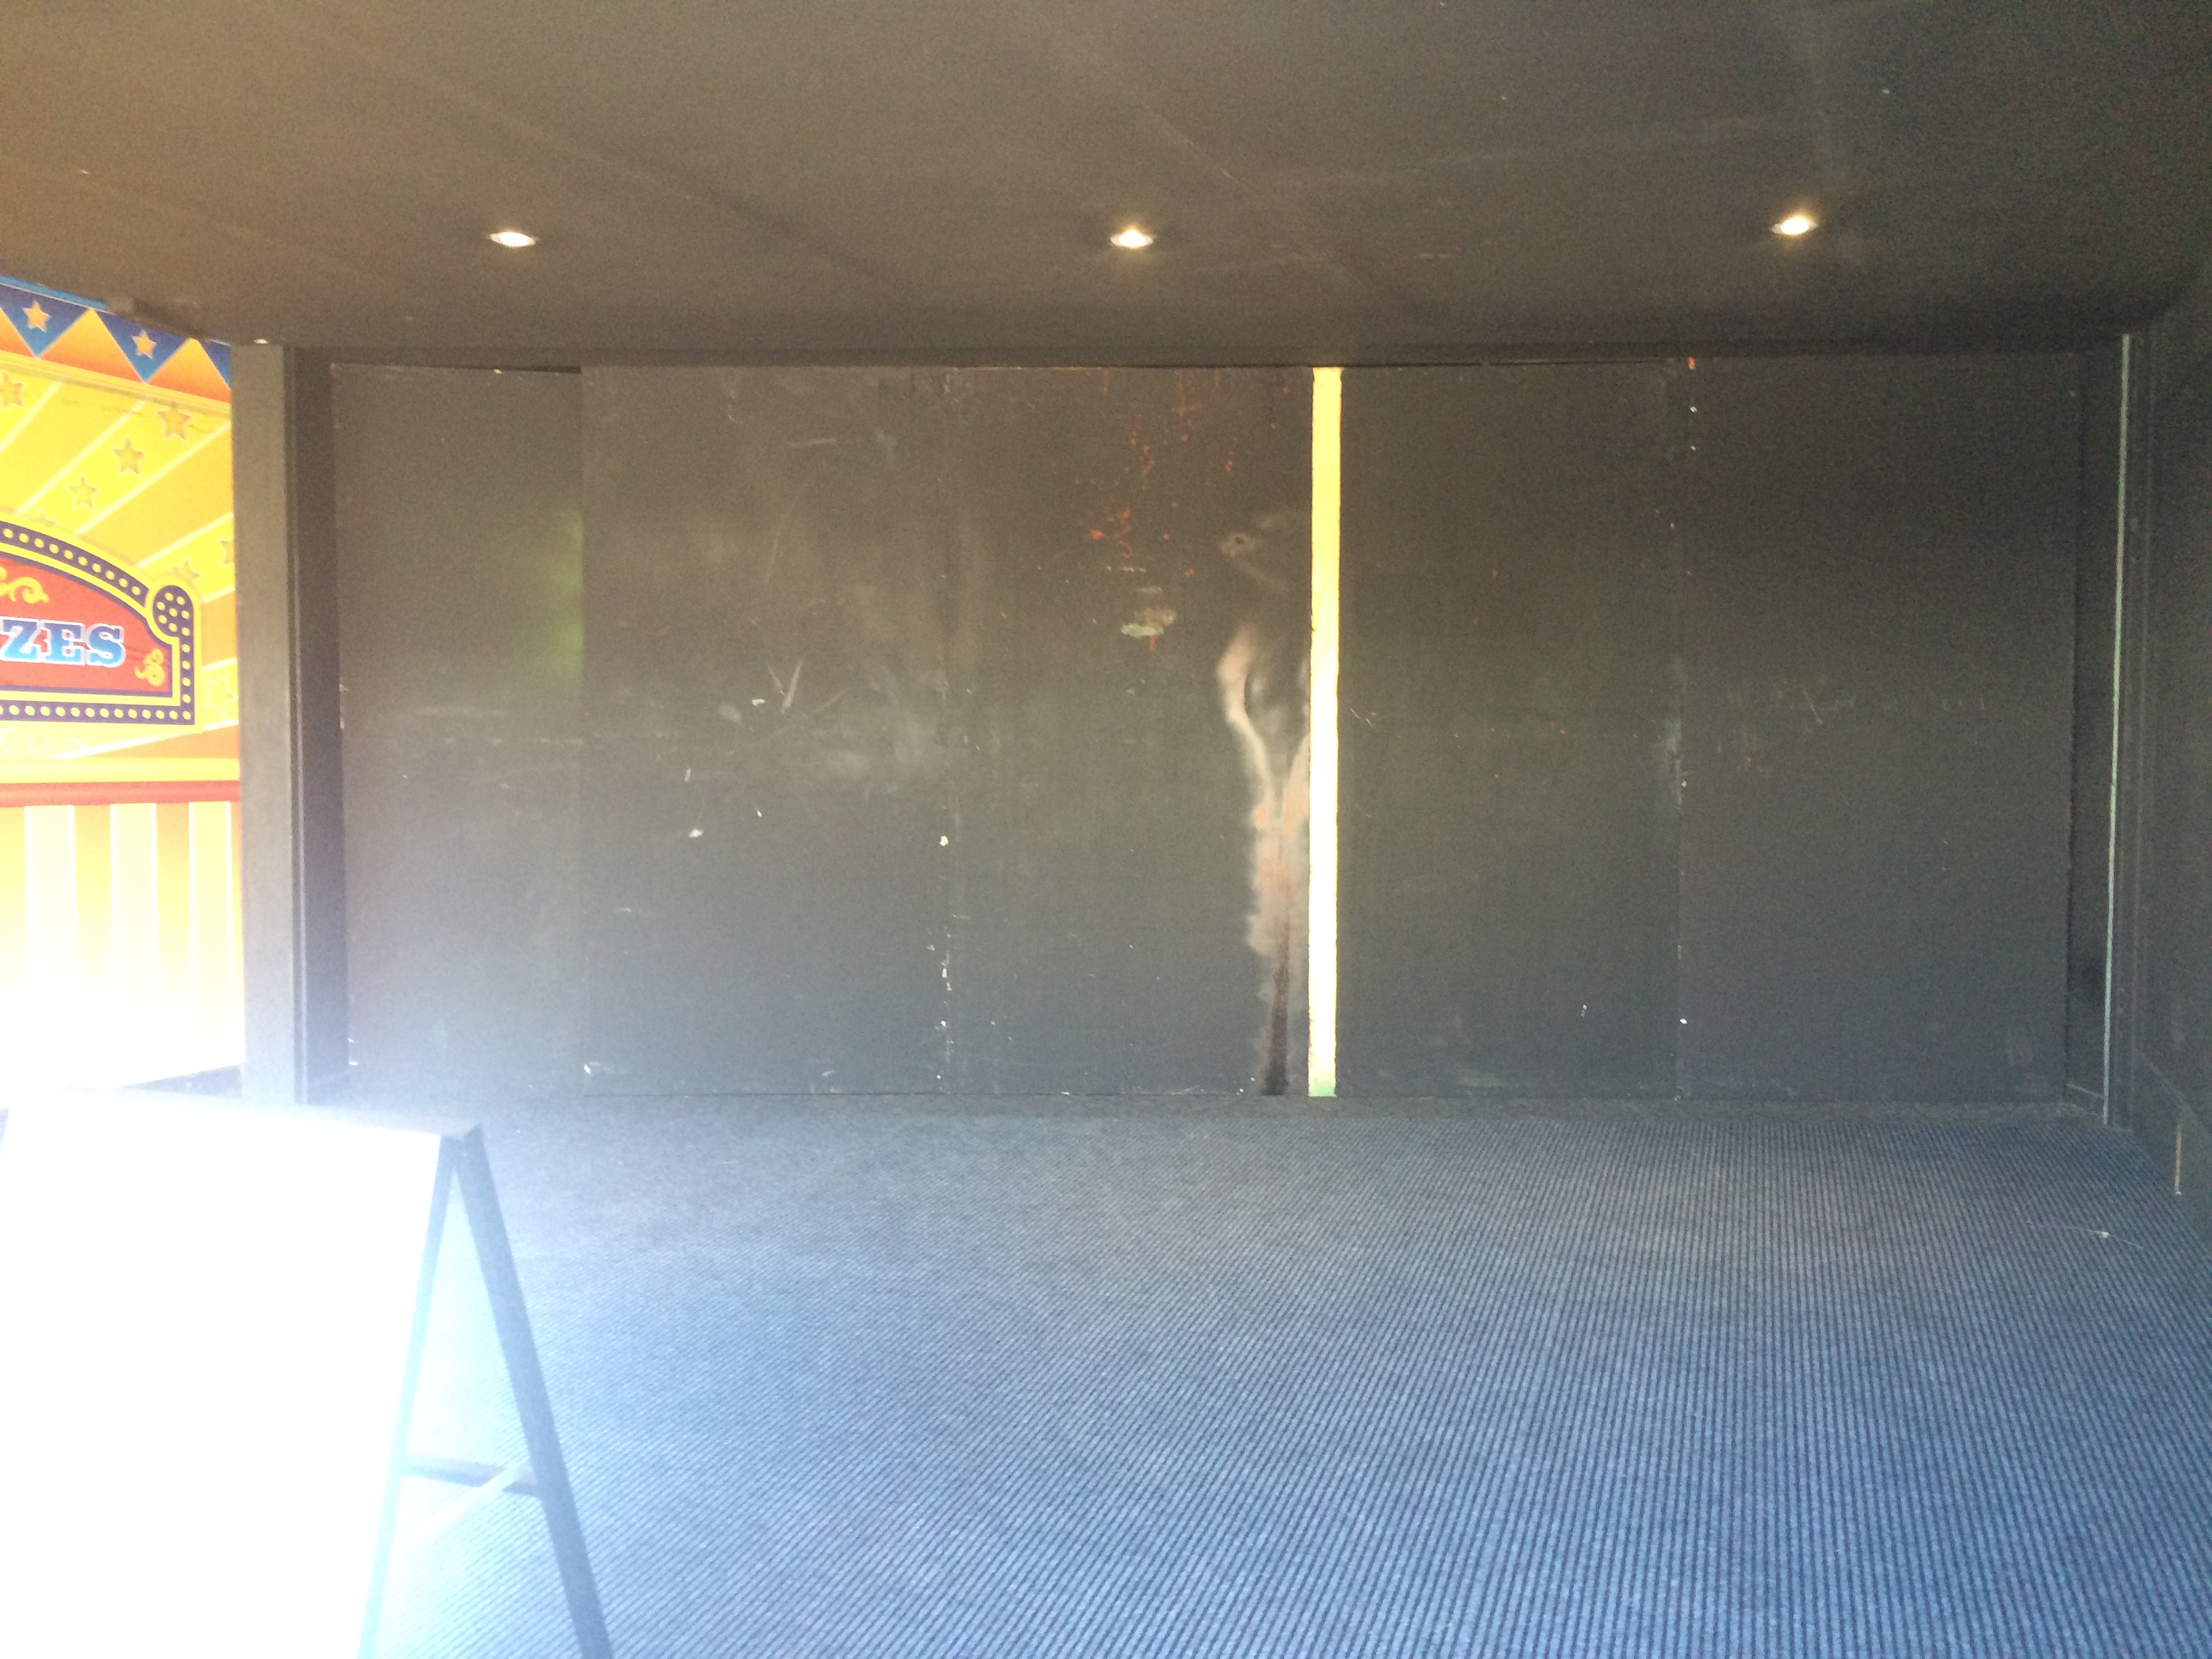 Movie world fright nights 2016 page 21 theme park discussion the roller doors have been removed gumiabroncs Choice Image